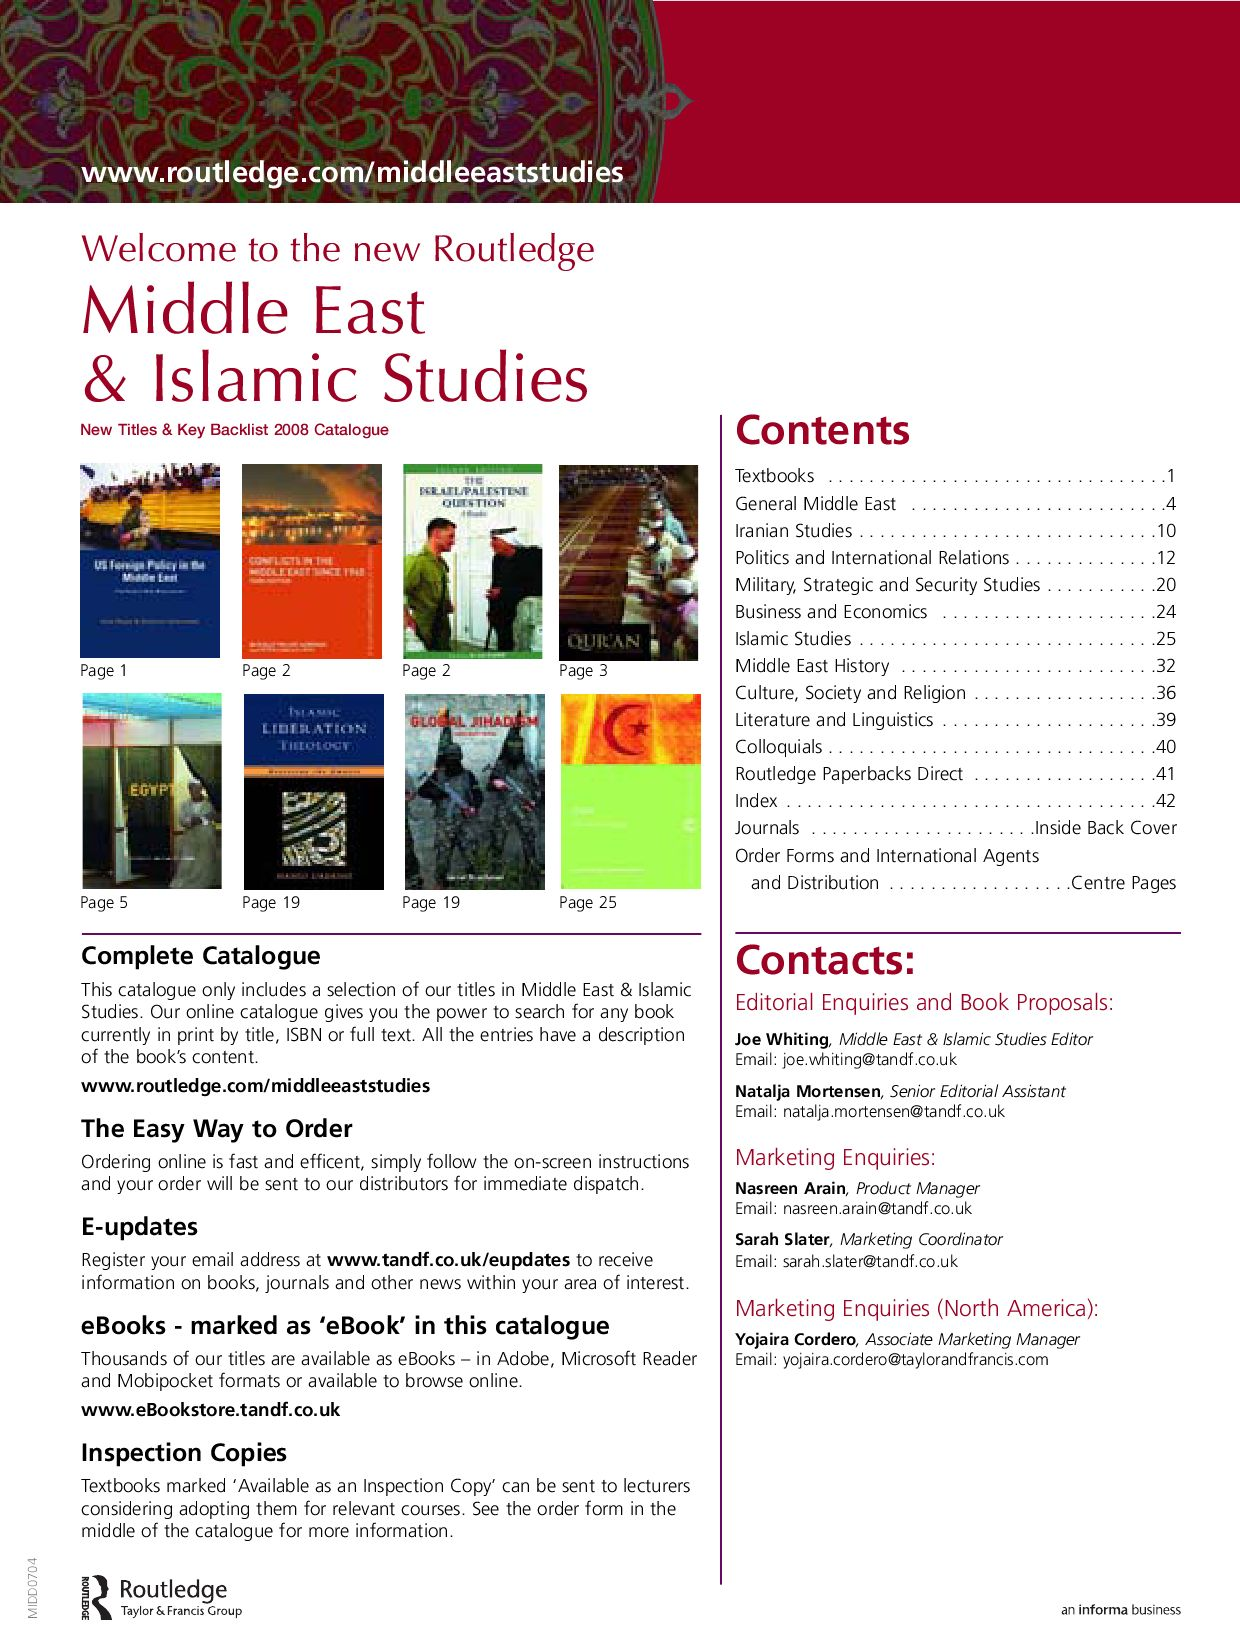 Middle East & Islamic Studies 2008 (uk) By Routledge Taylor & Francis Group   Issuu